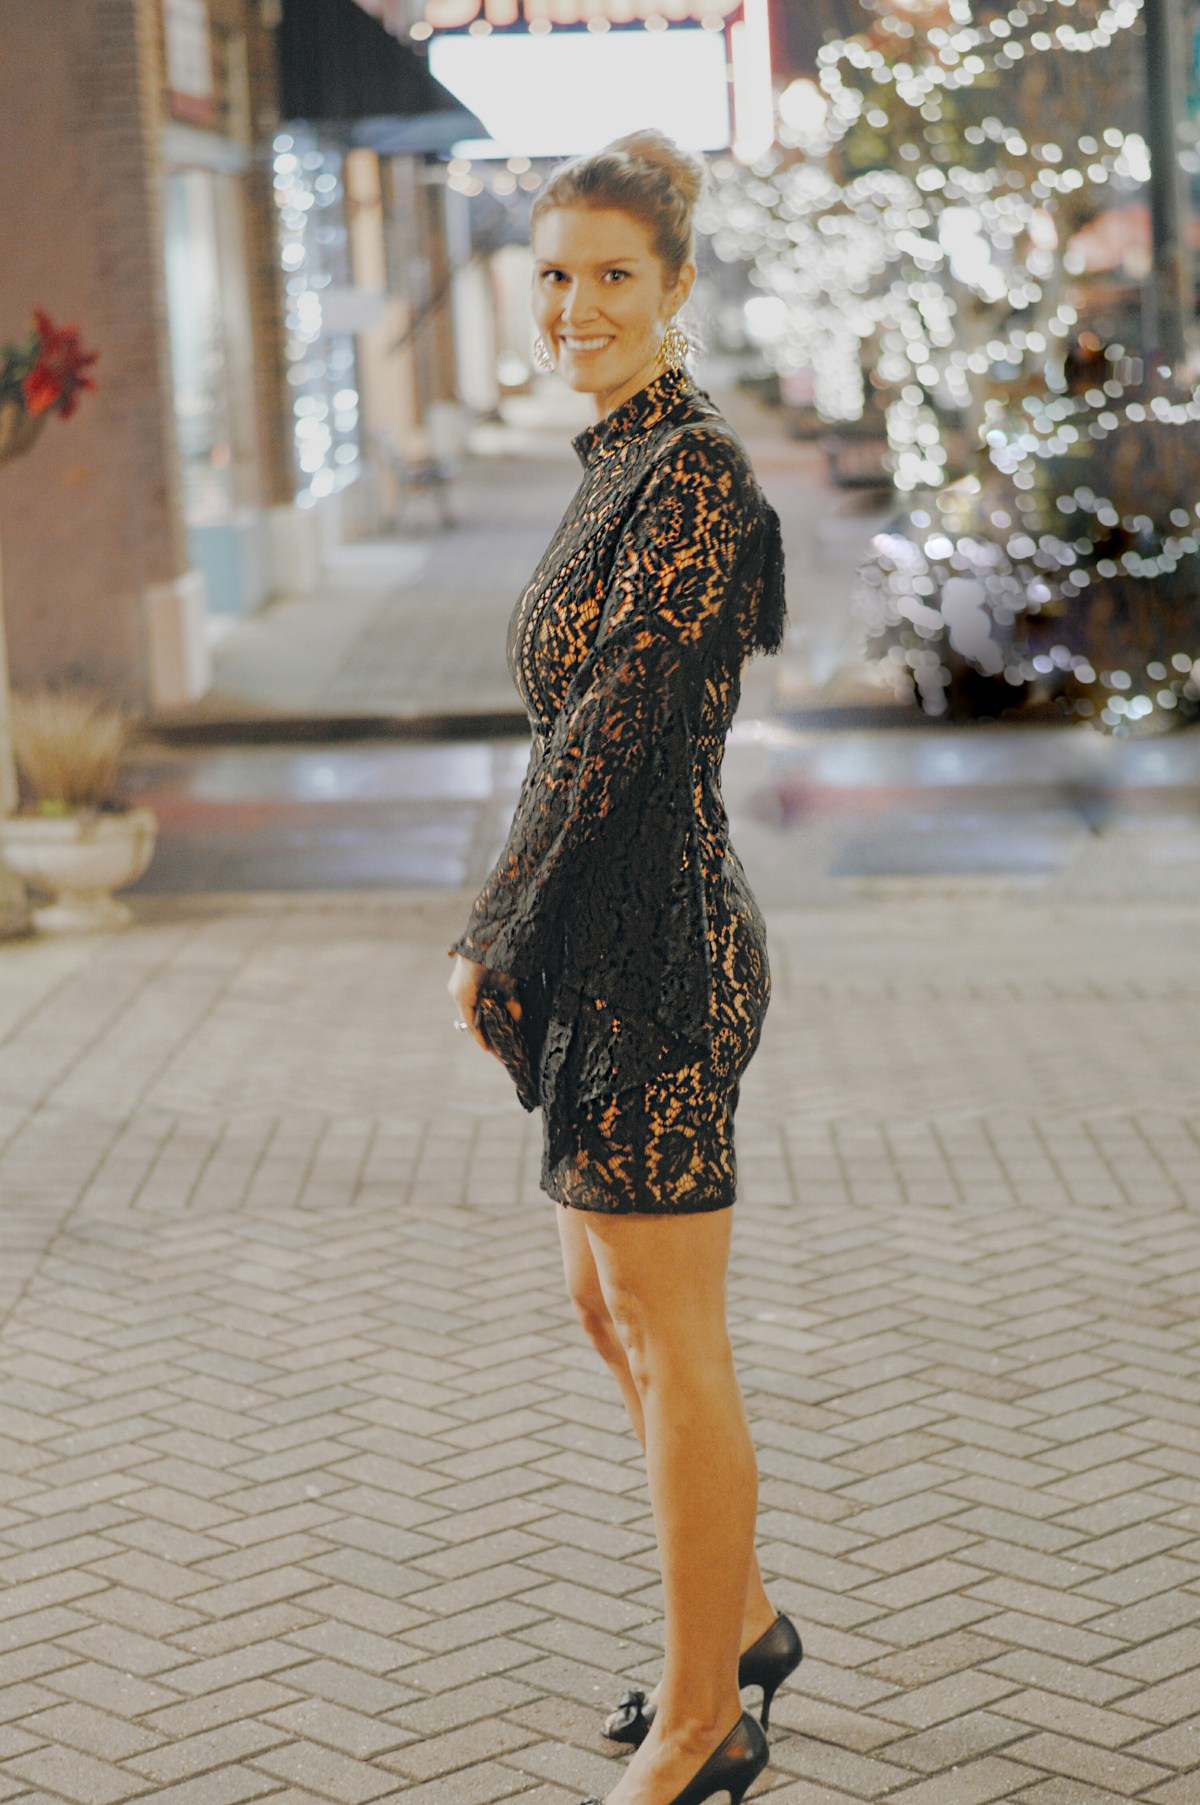 blogger in new years black dress